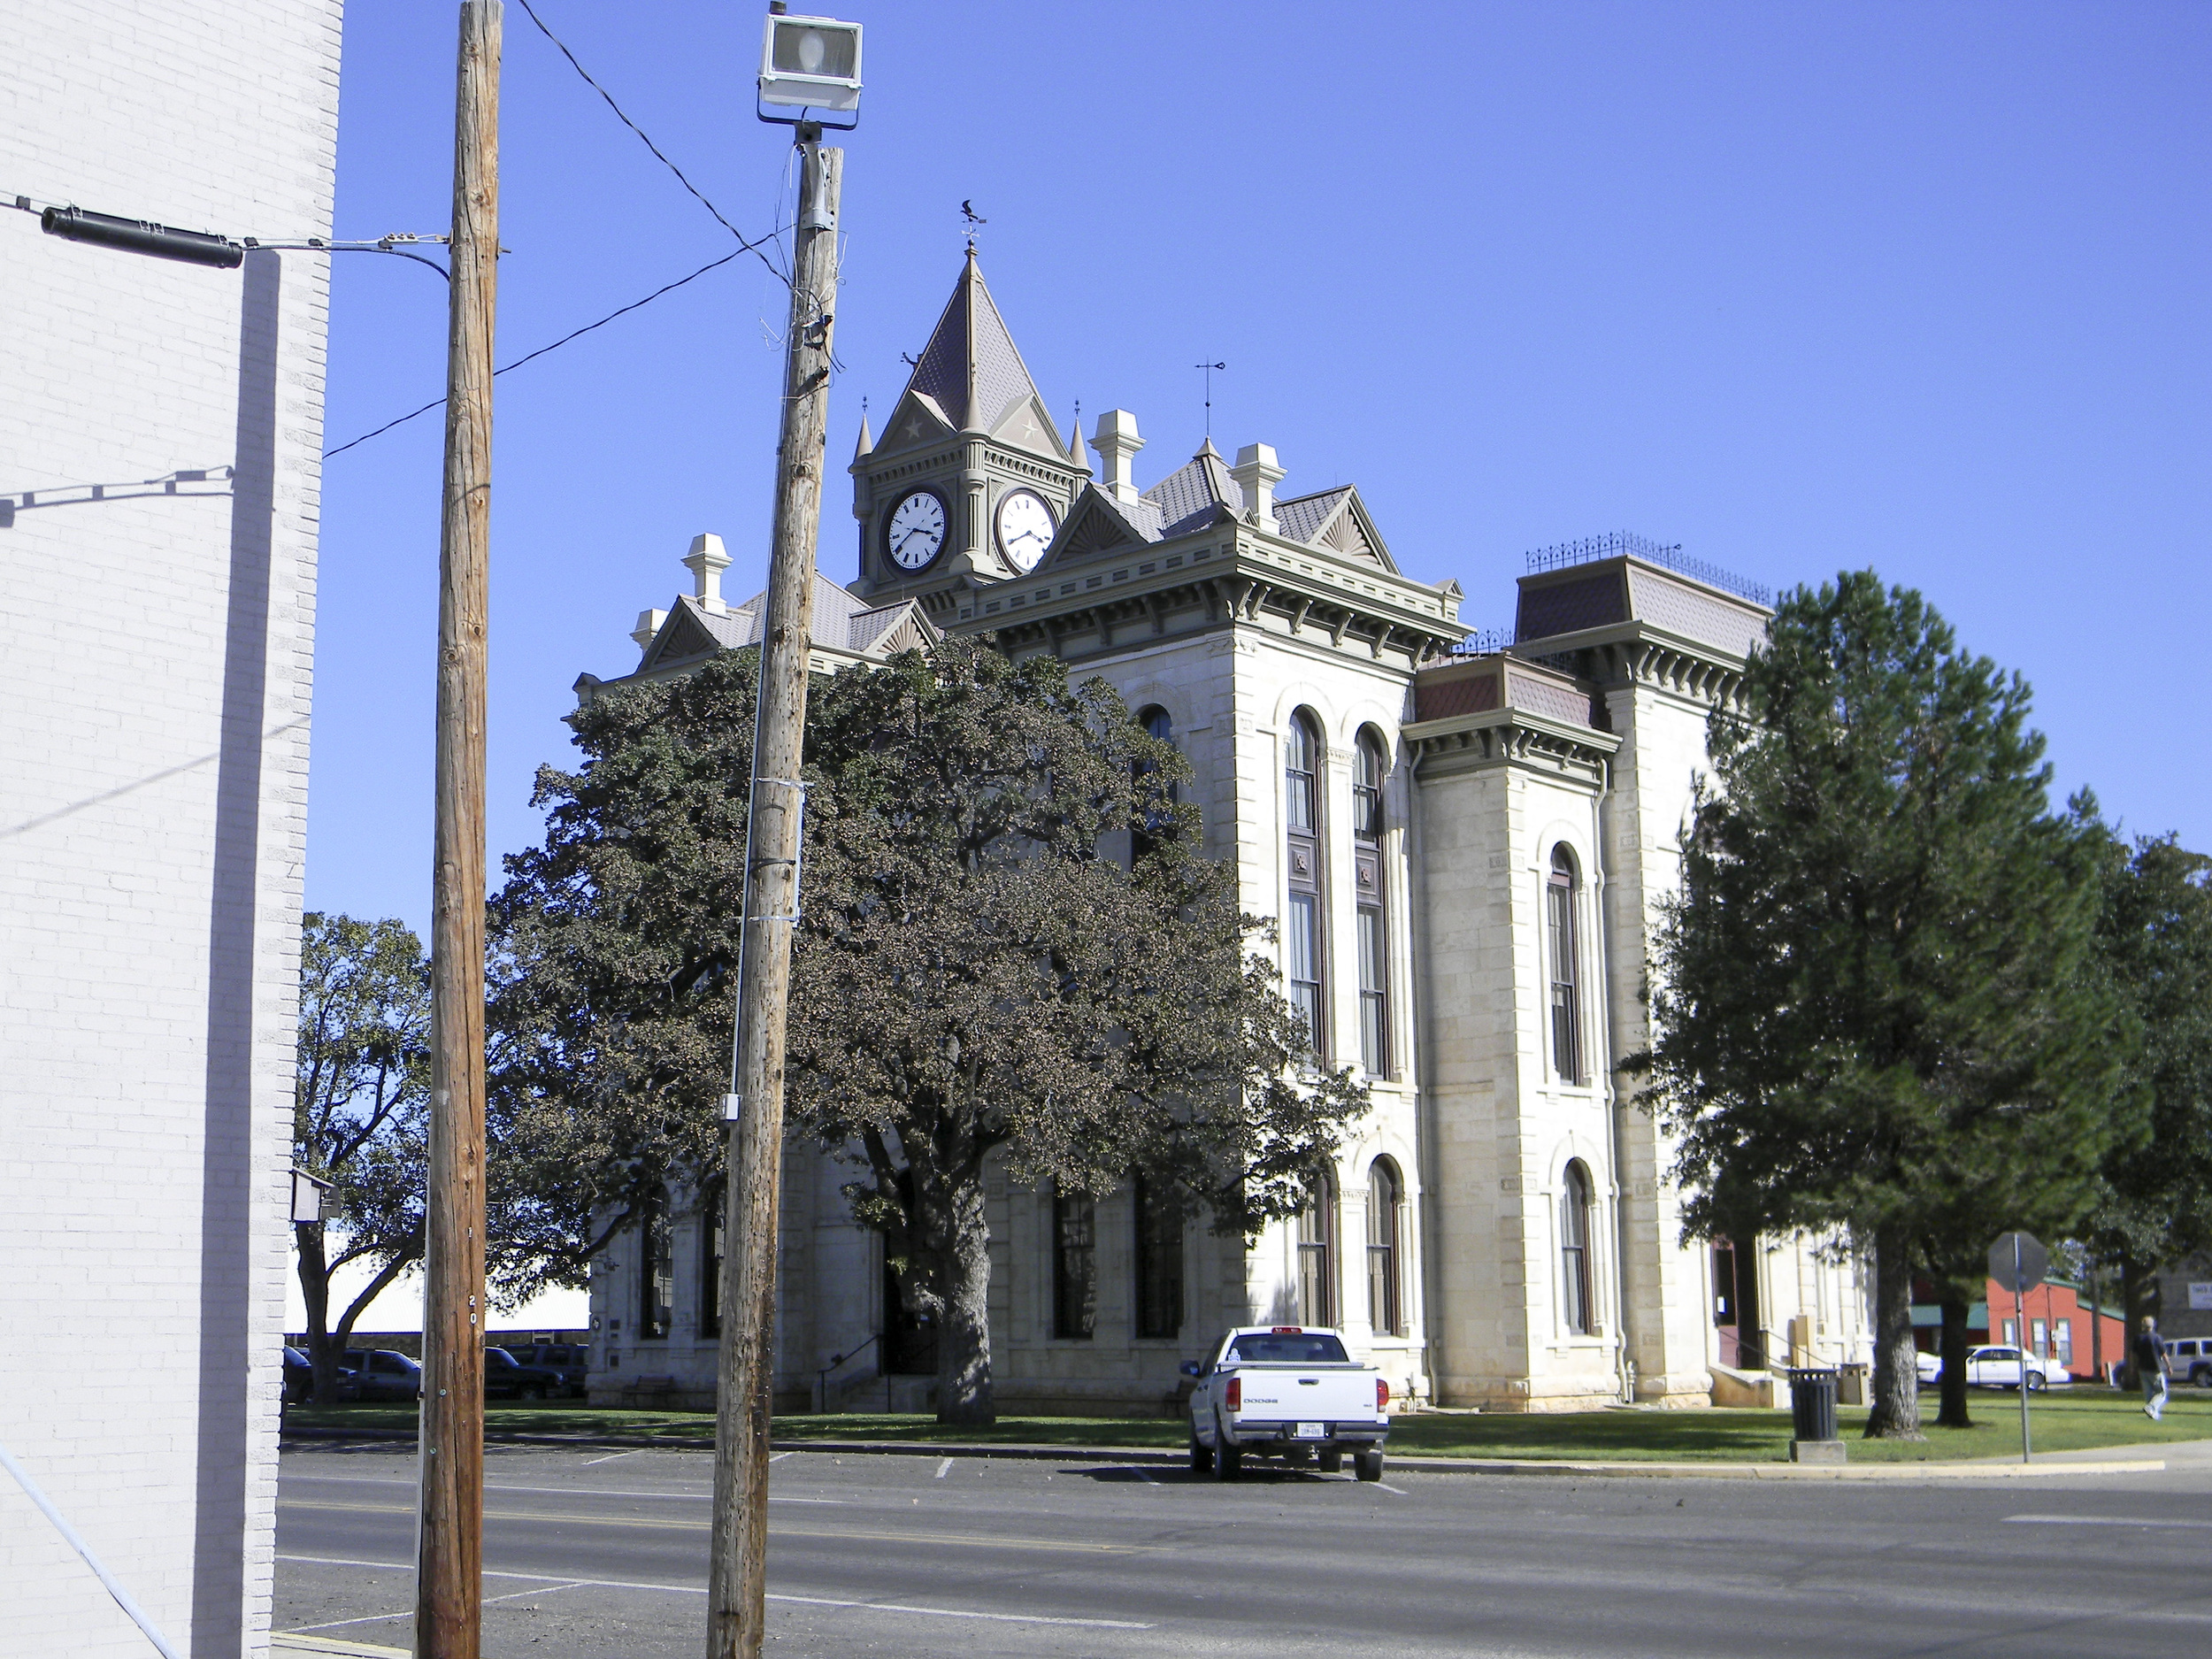 SAC_TX_BOSQUE_MERIDIAN_courthouse_7-2012-Oct18.jpg